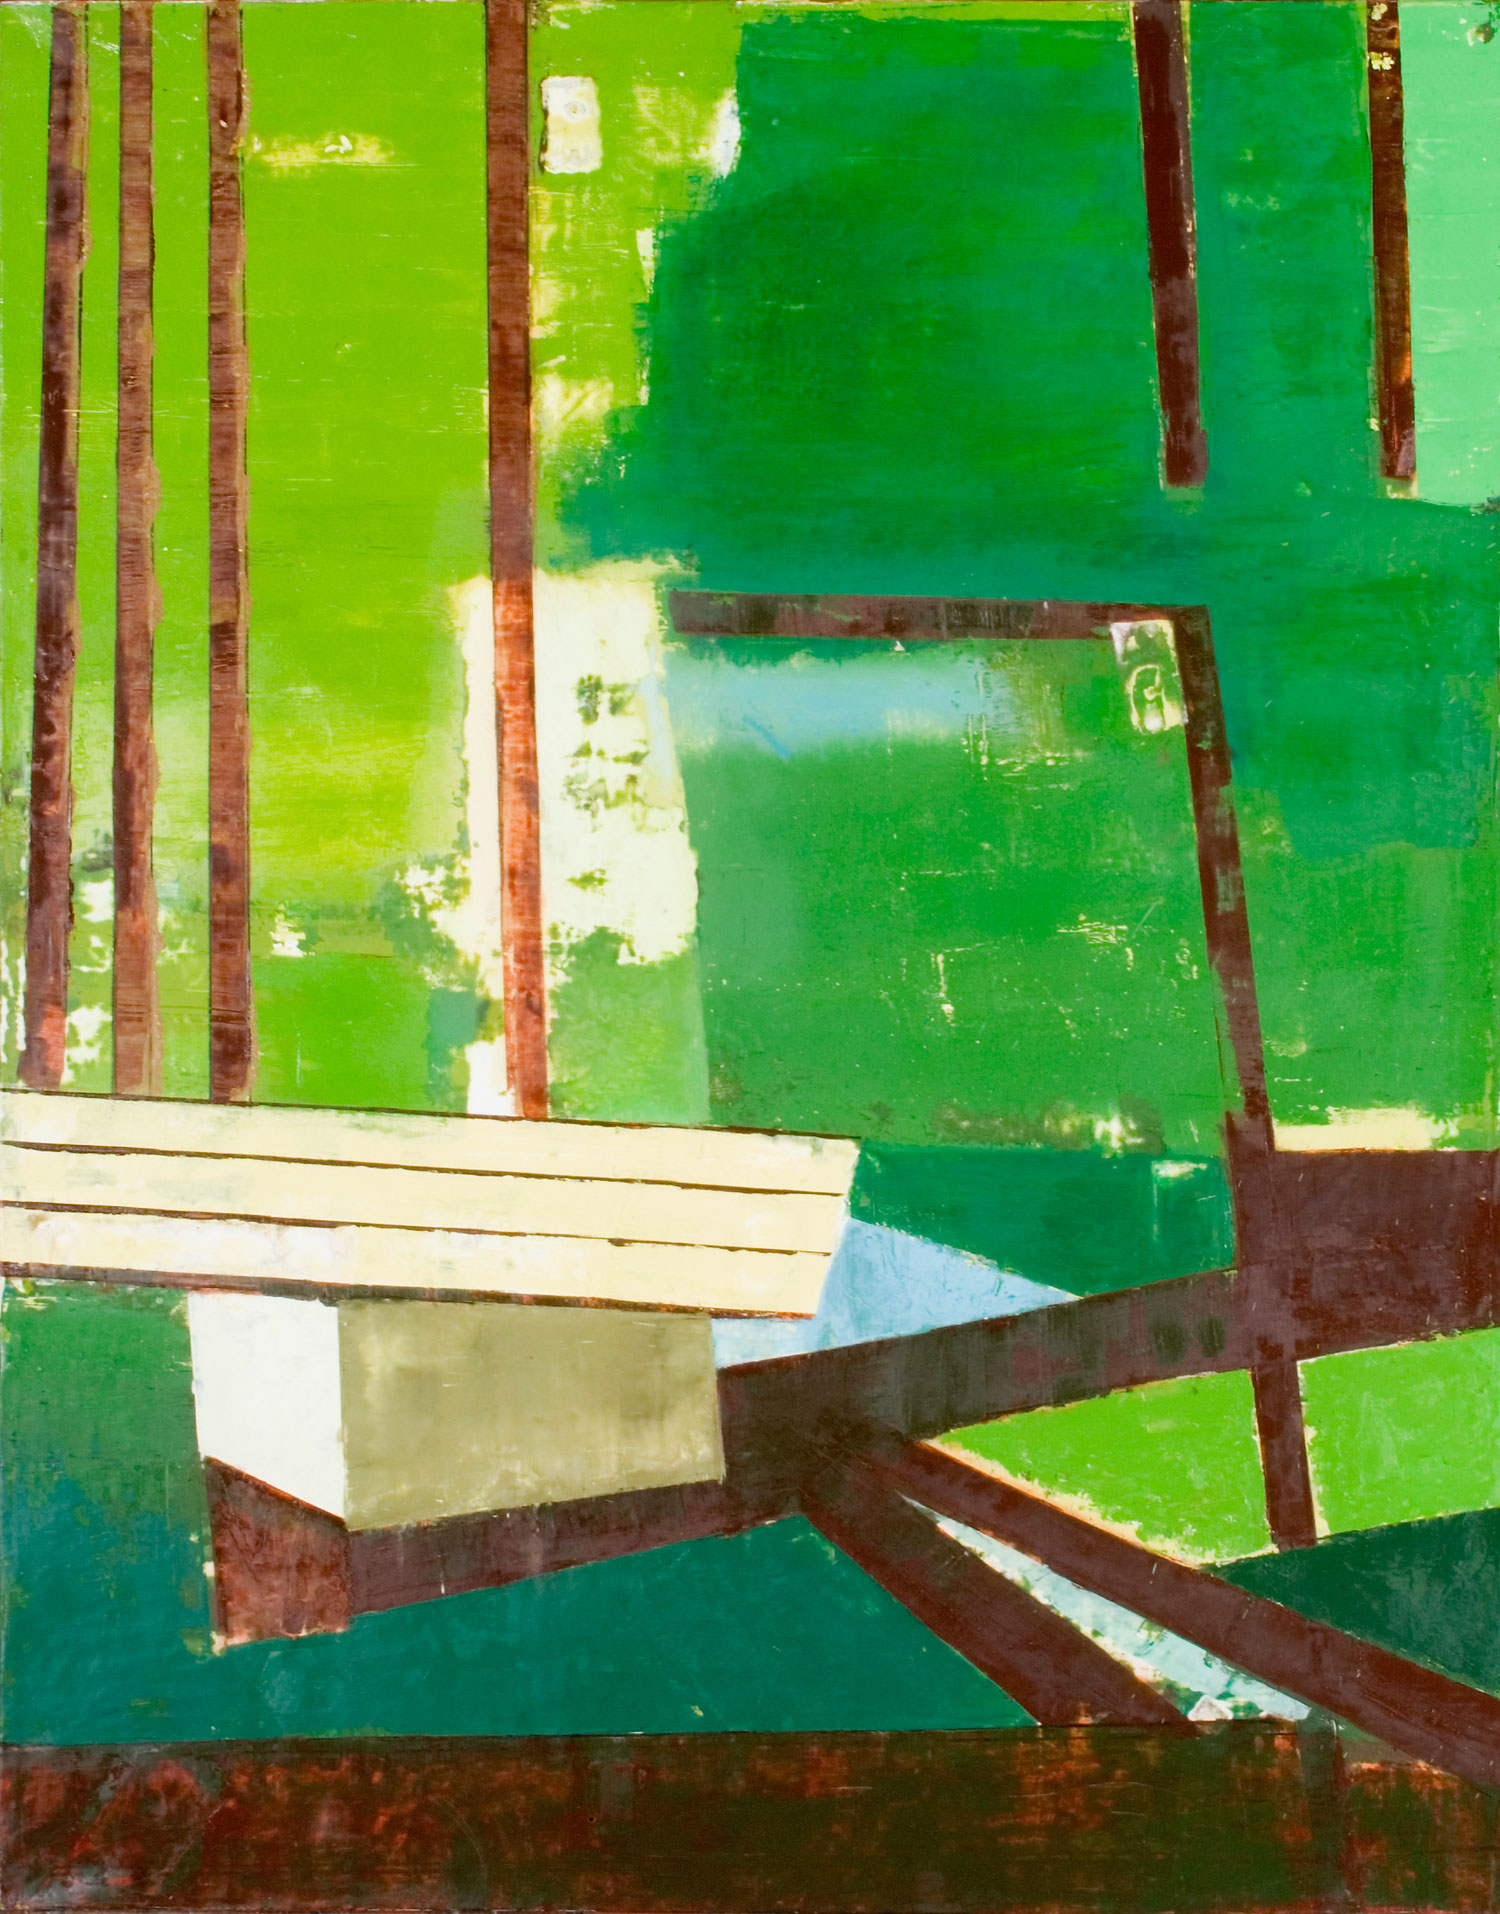 Orchard Road. 2006 (167 x 133cm)